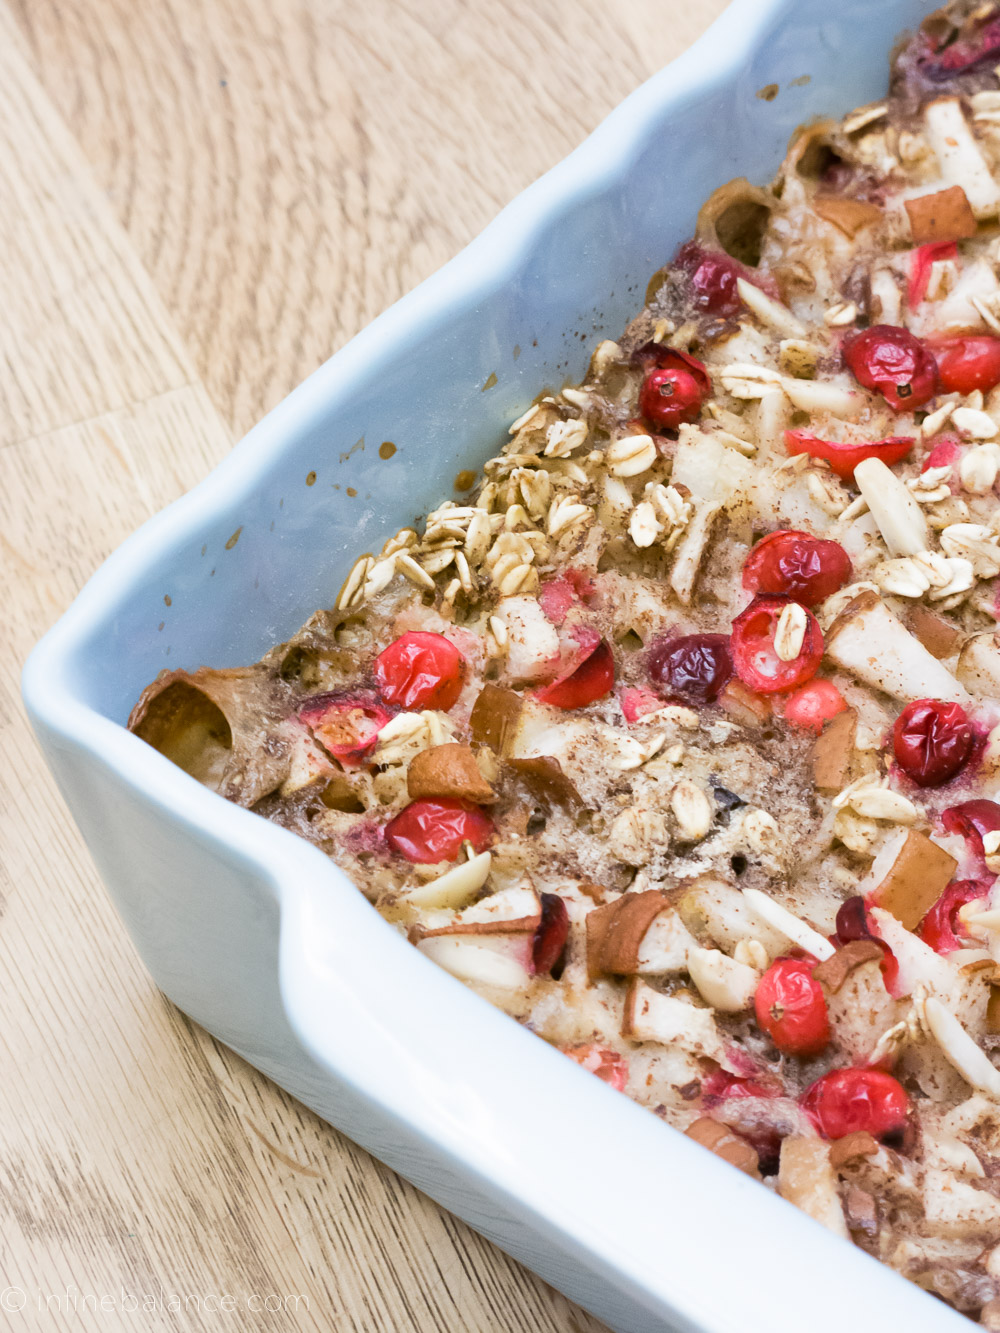 Cranberry and Pear Baked Oatmeal | infinebalance.com #recipe #breakfast